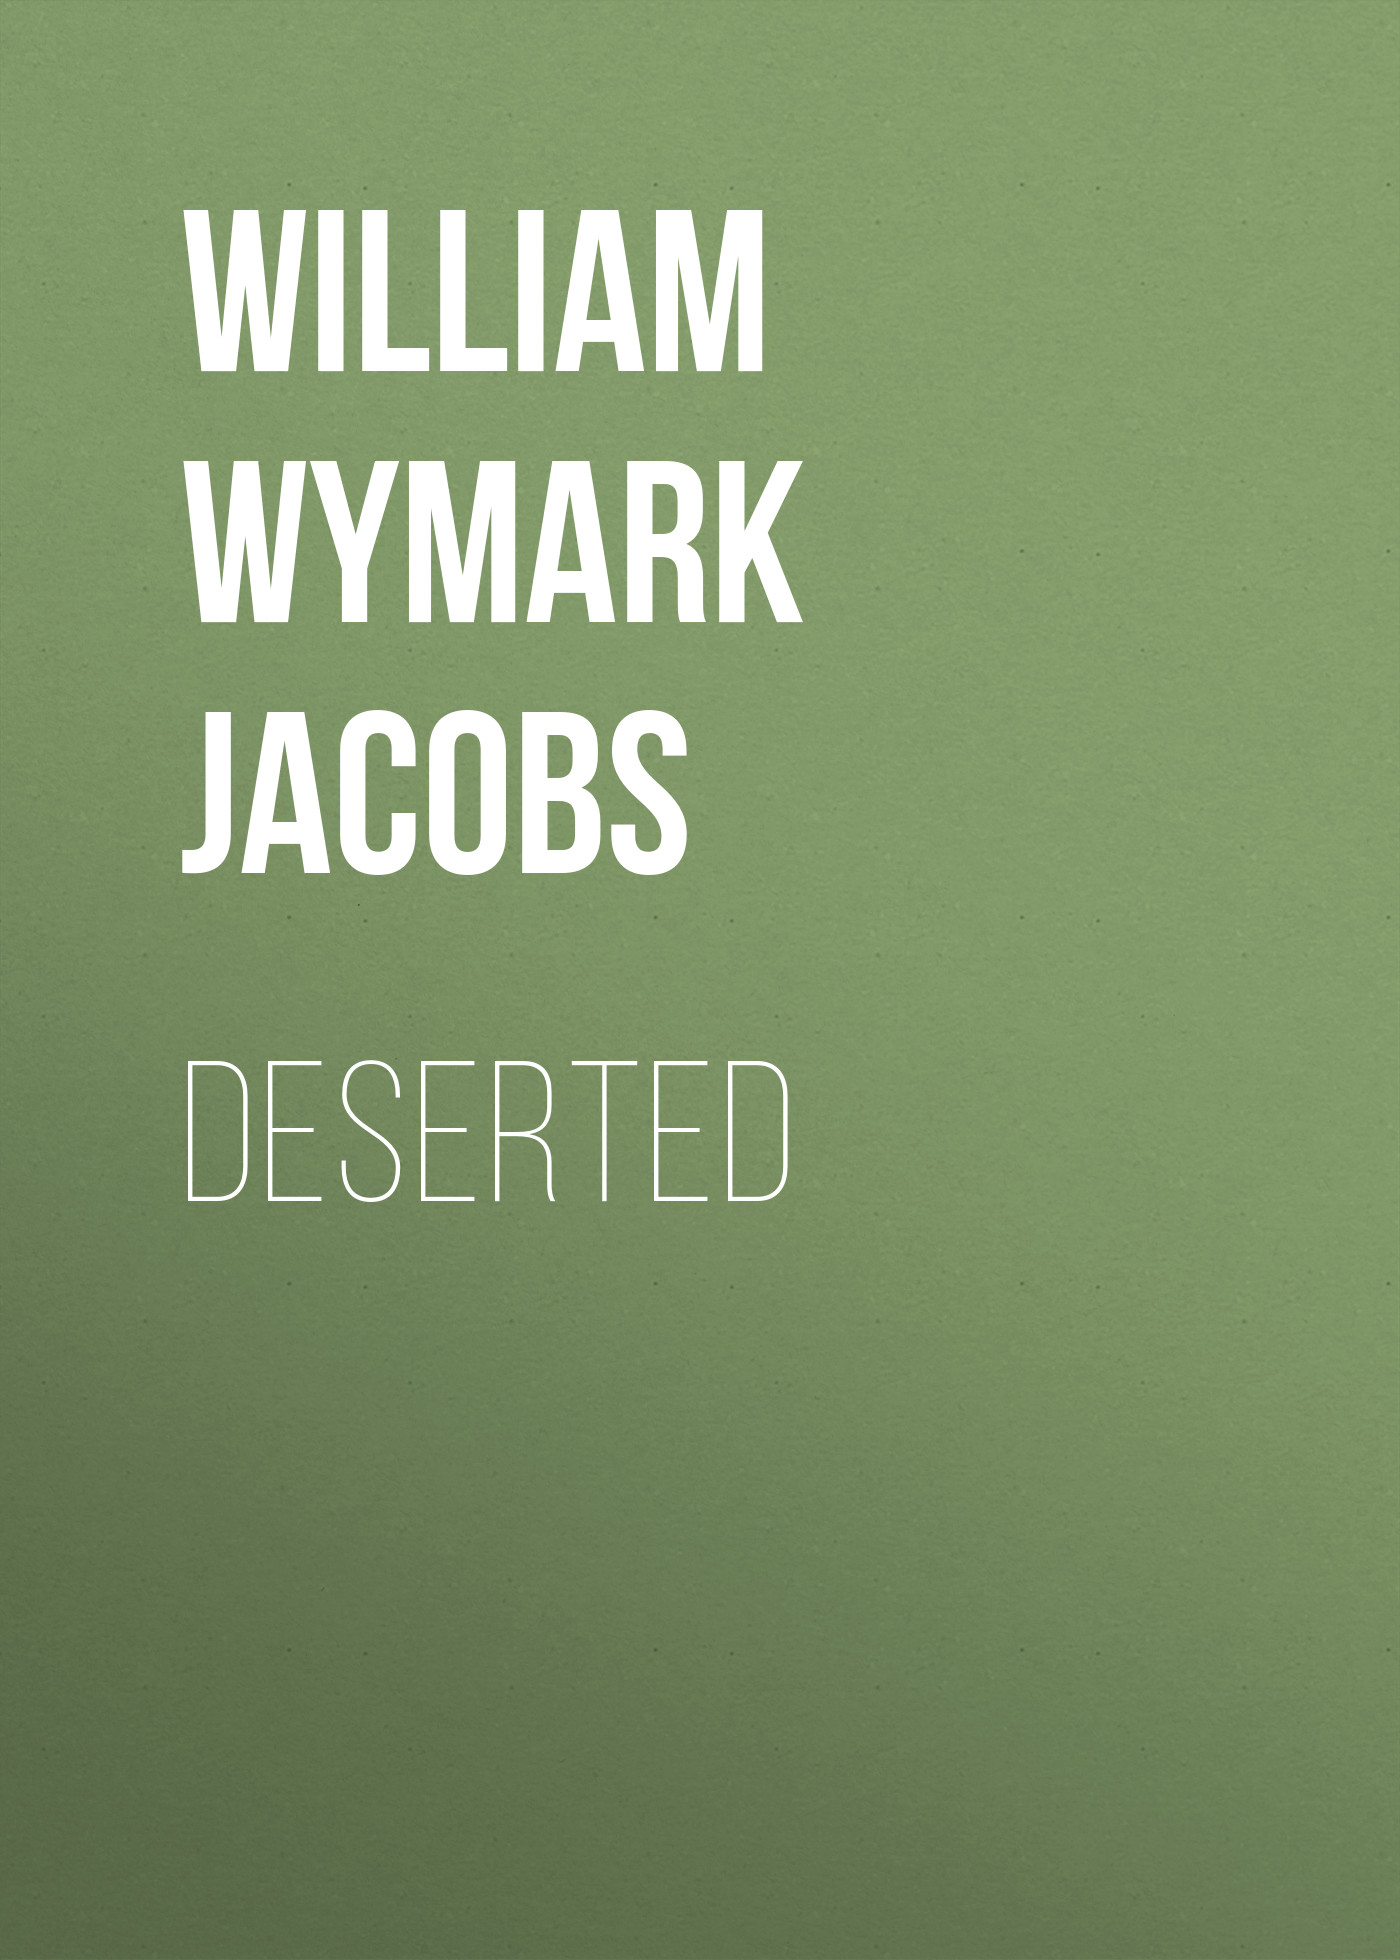 лучшая цена William Wymark Jacobs Deserted